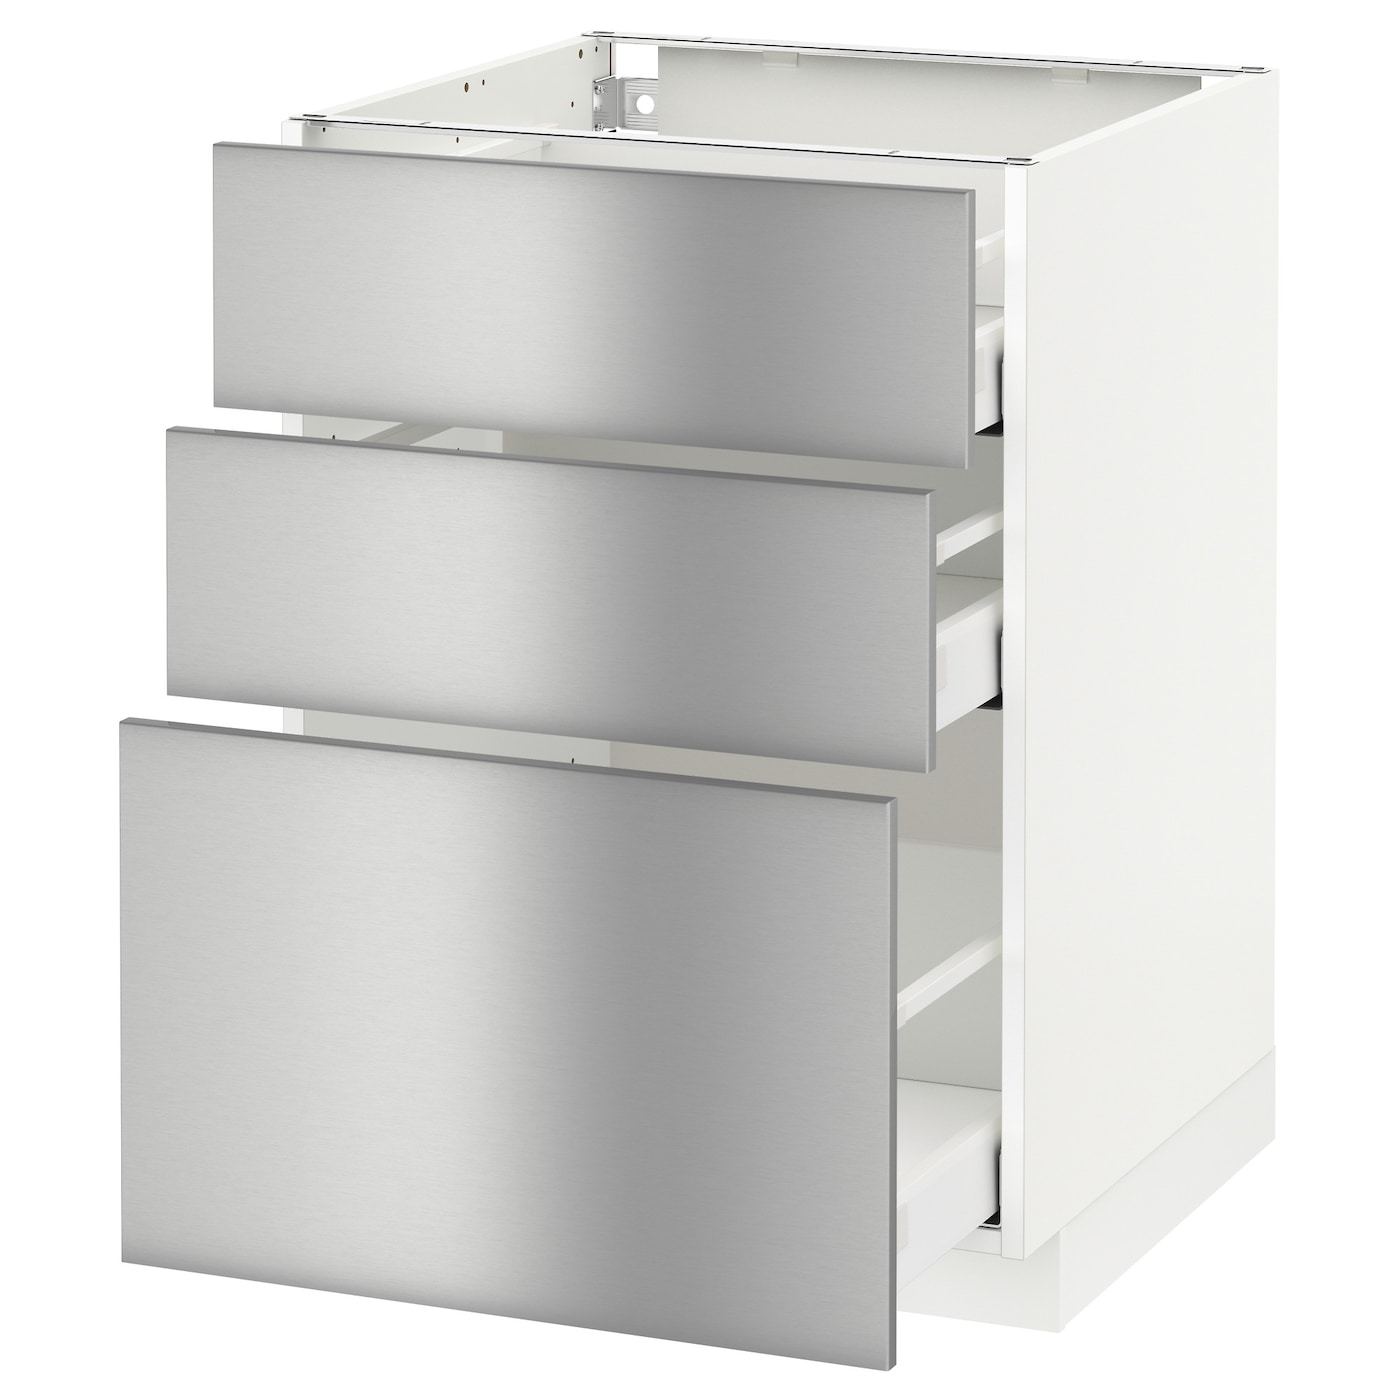 Stainless Kitchen Cabinet: METOD/MAXIMERA Base Cabinet With 3 Drawers White/grevsta